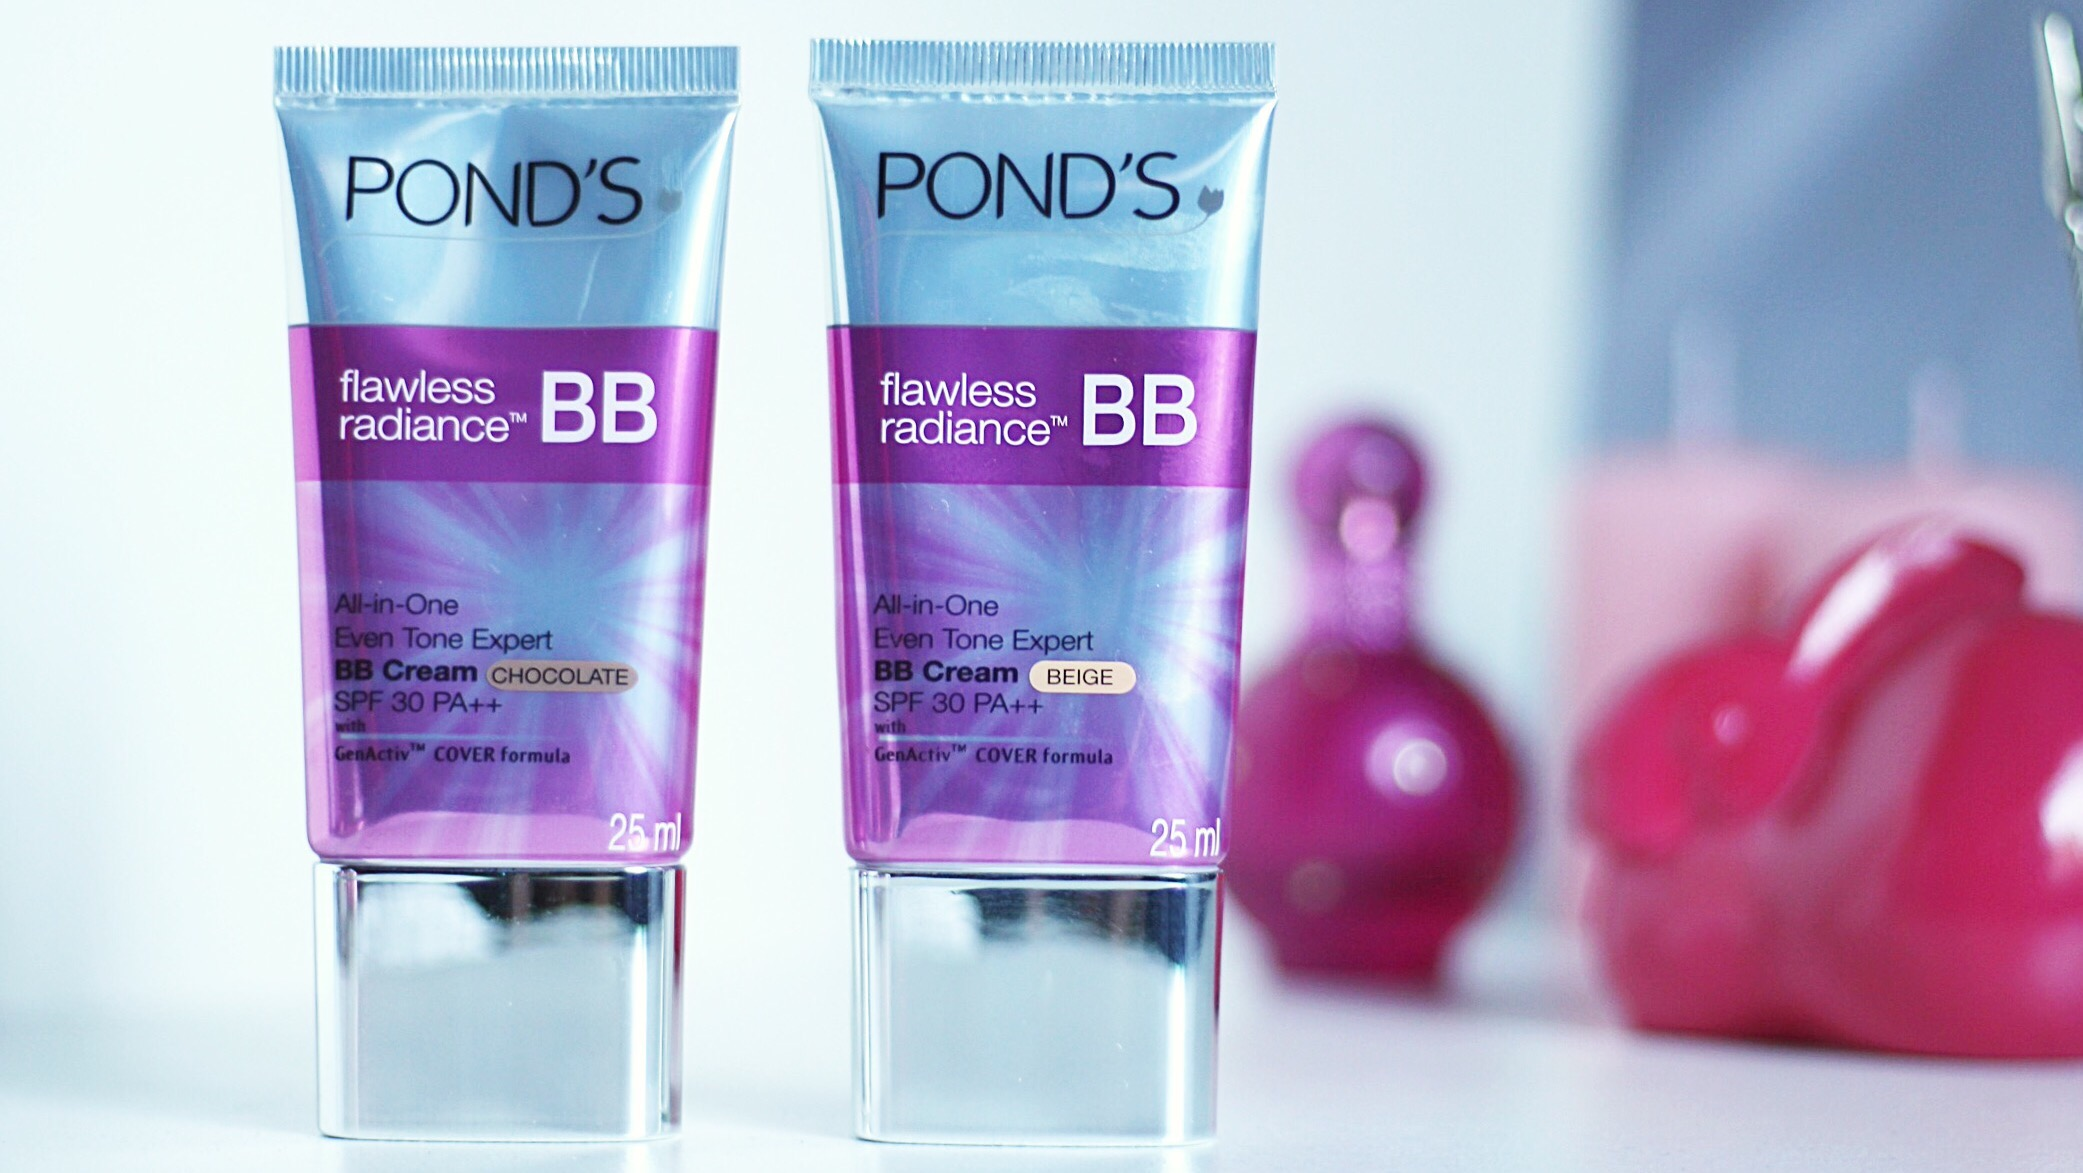 Win The Fight Against Dark Marks With Ponds Flawless Radiance Range Flawles Night Cream Bb Also Serves A Dual Purpose Of Evening Out Skin Tone Whilst Covering And Providing Sun Protection